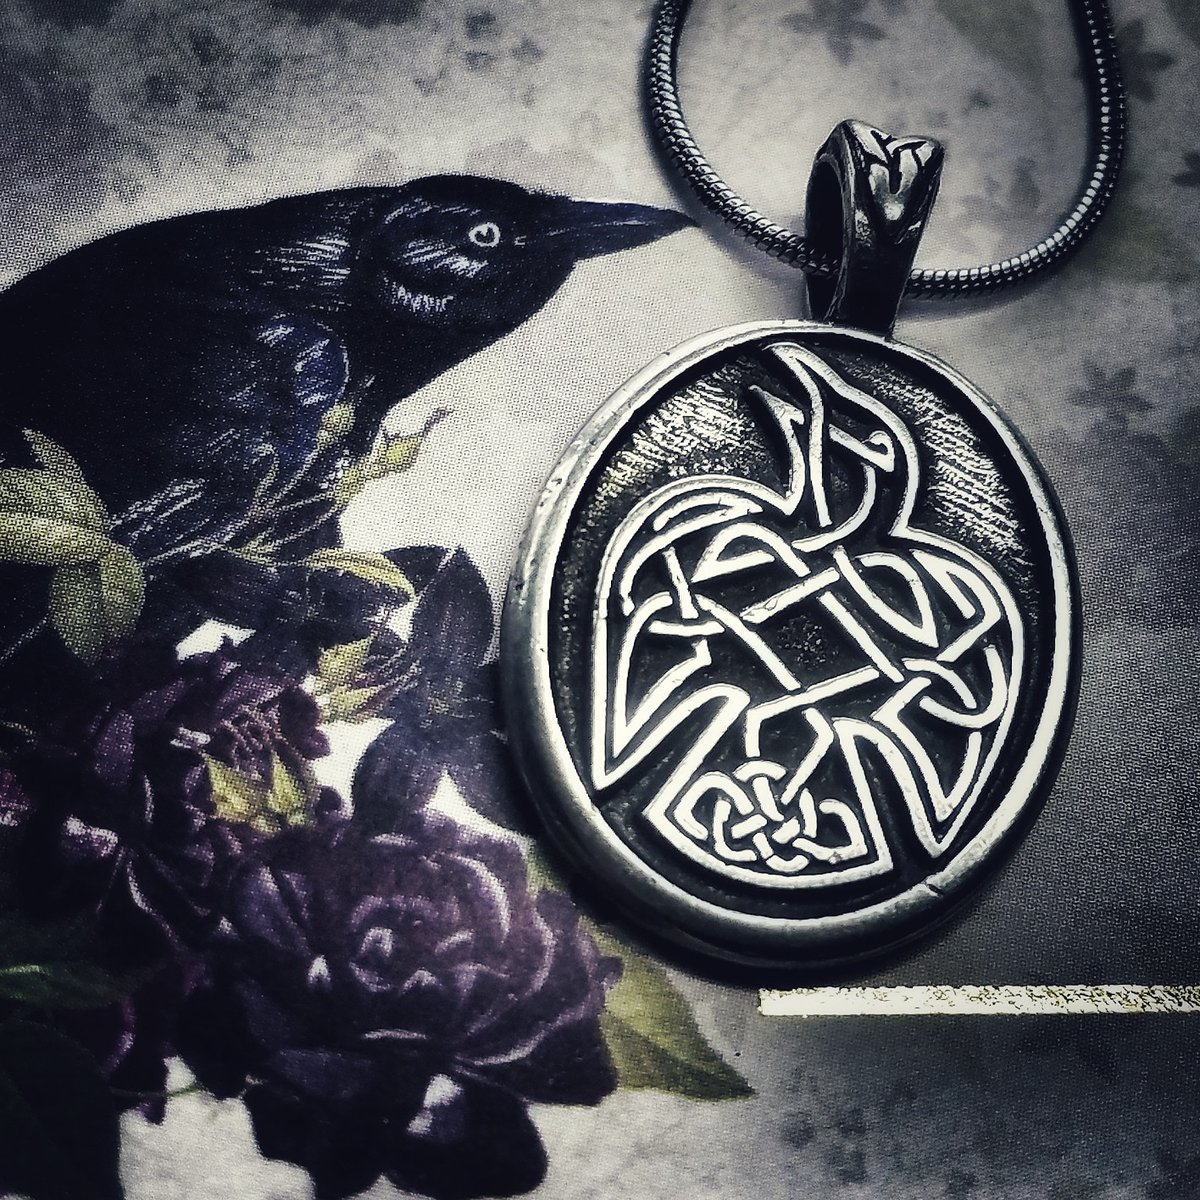 Celtic Raven Pendant   Among the Celts, the Raven was associated with the Morrigan, who took the shape of ravens over battlefields as Chooser of the Slain  #celticknotworks #beyourownkindofawesome #raven #ravenjewelry #celticknot #odin #norse #vikinggifts #raven https://t.co/YbMAImaCQk